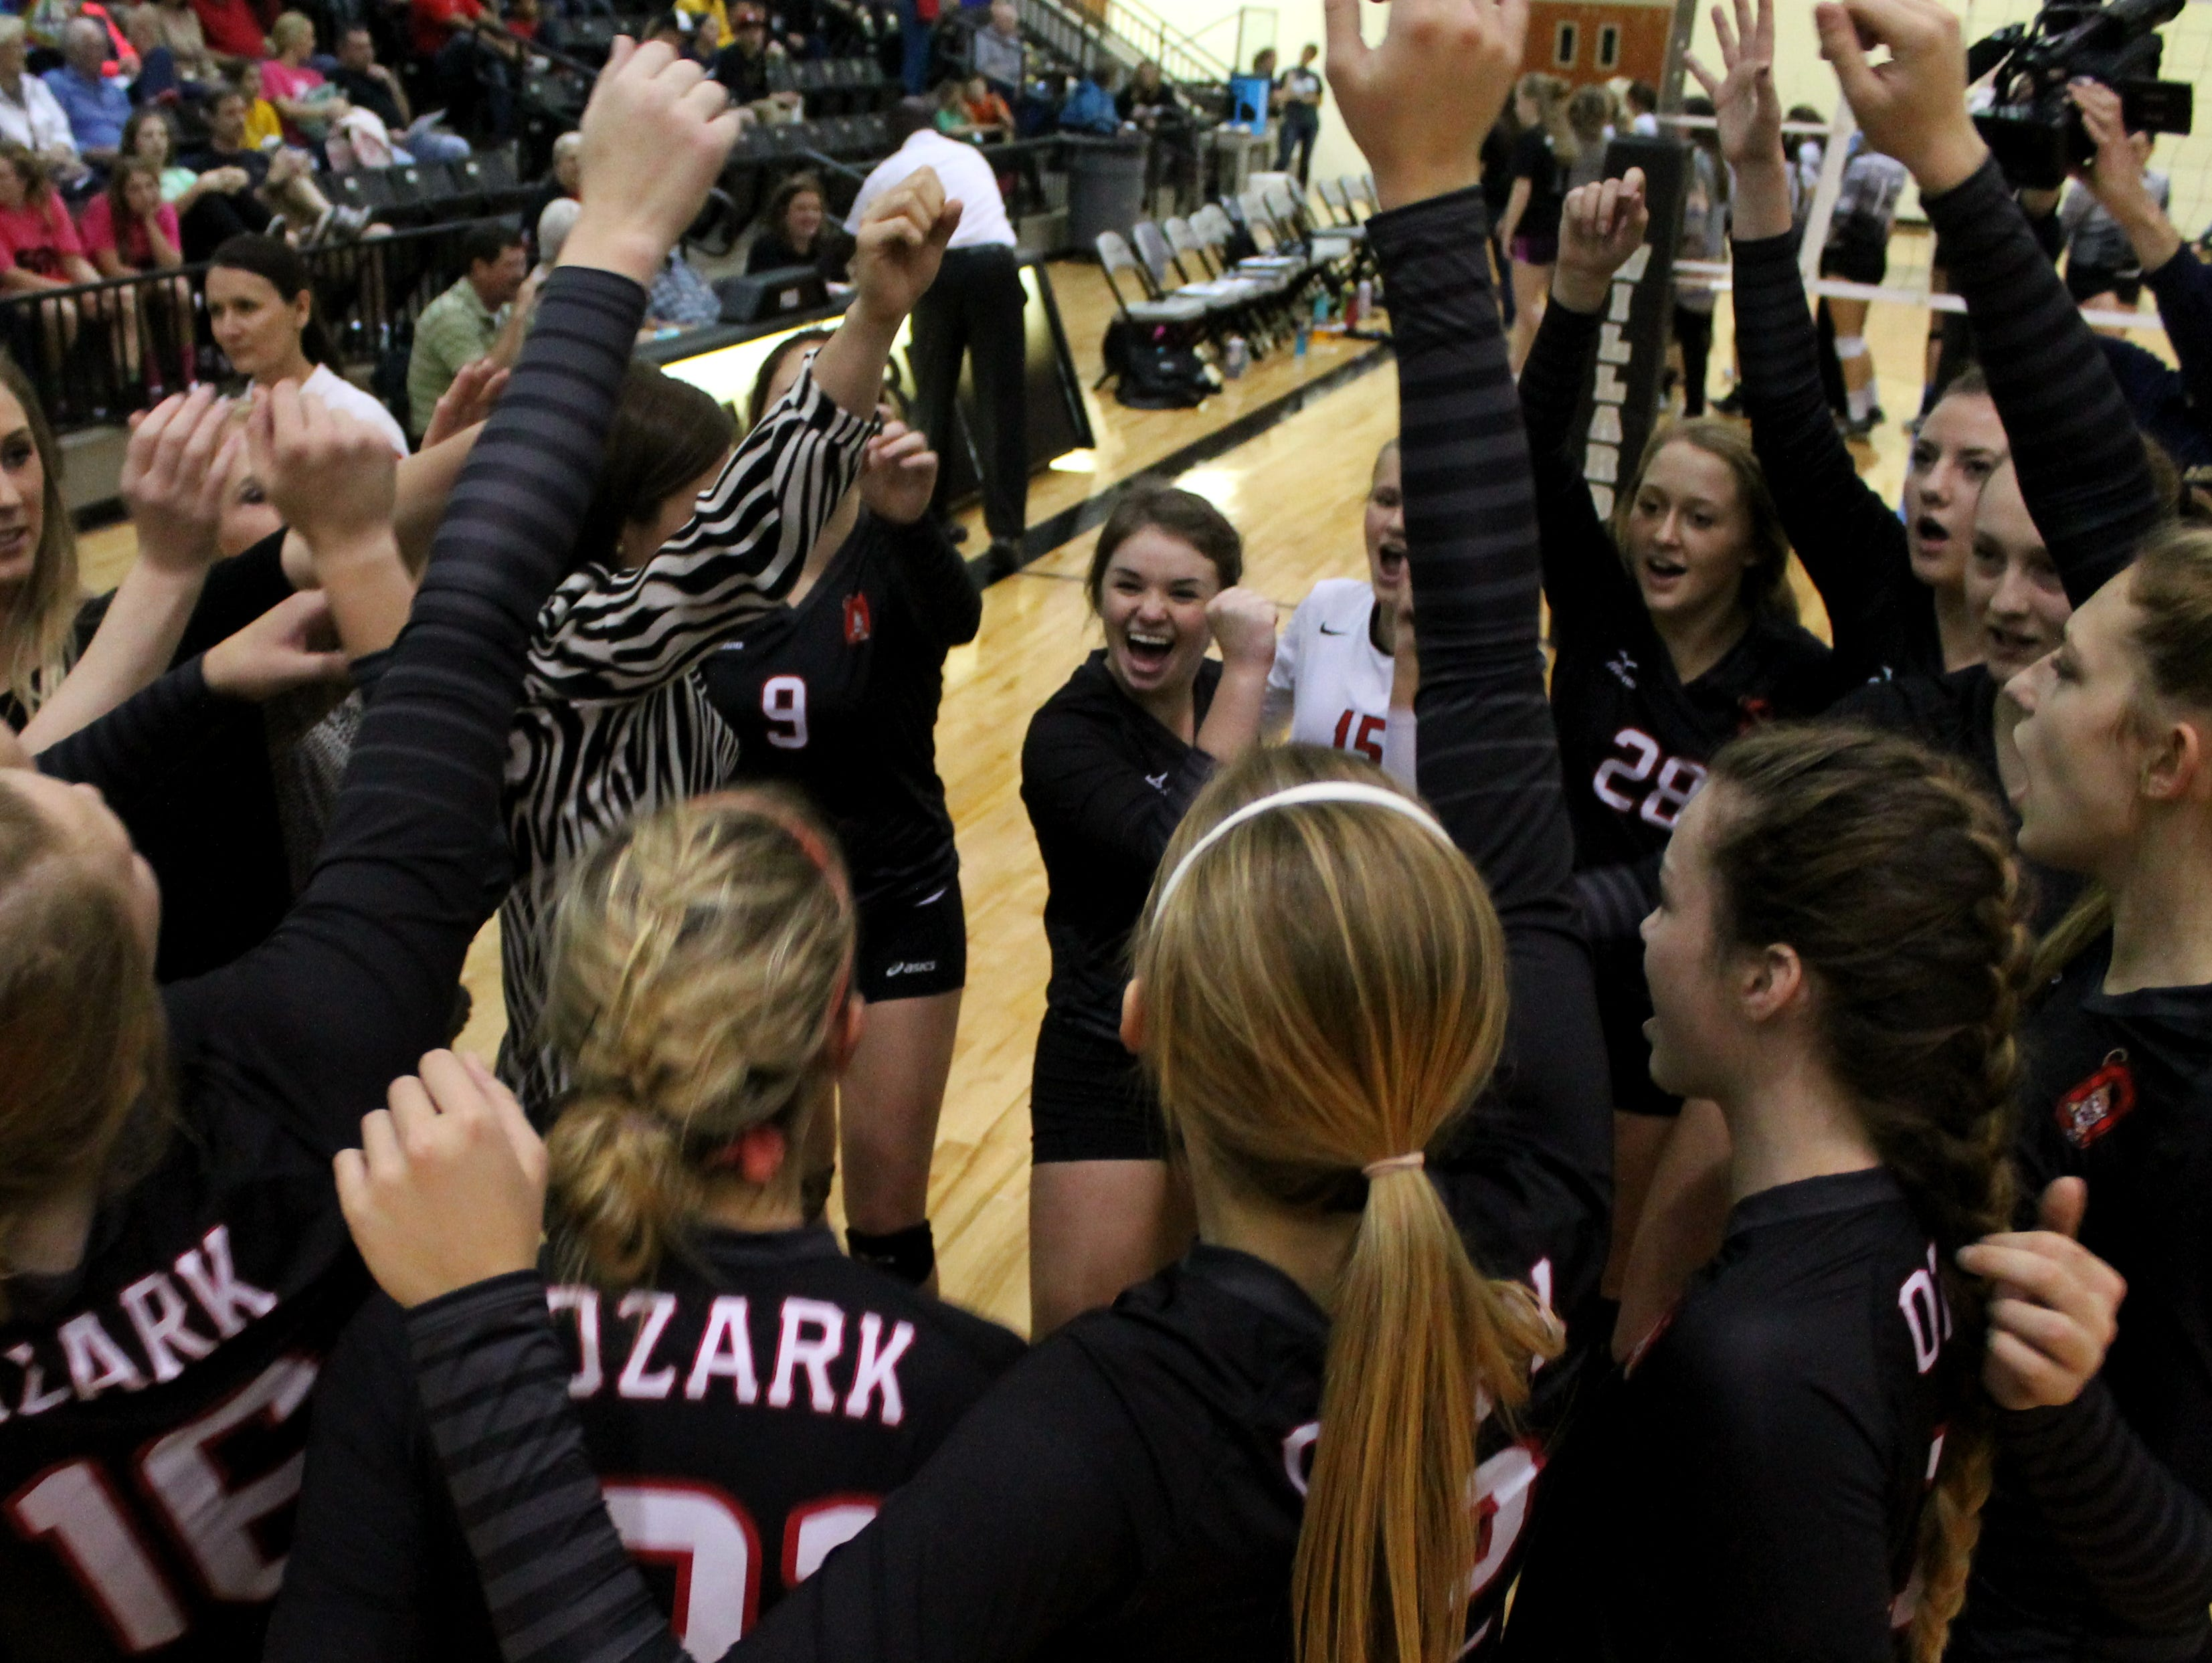 The Ozark Tigers volleyball team breaks huddle prior the start of a Class 4 playoff quarterfinal match at Willard Oct. 24, 2015.